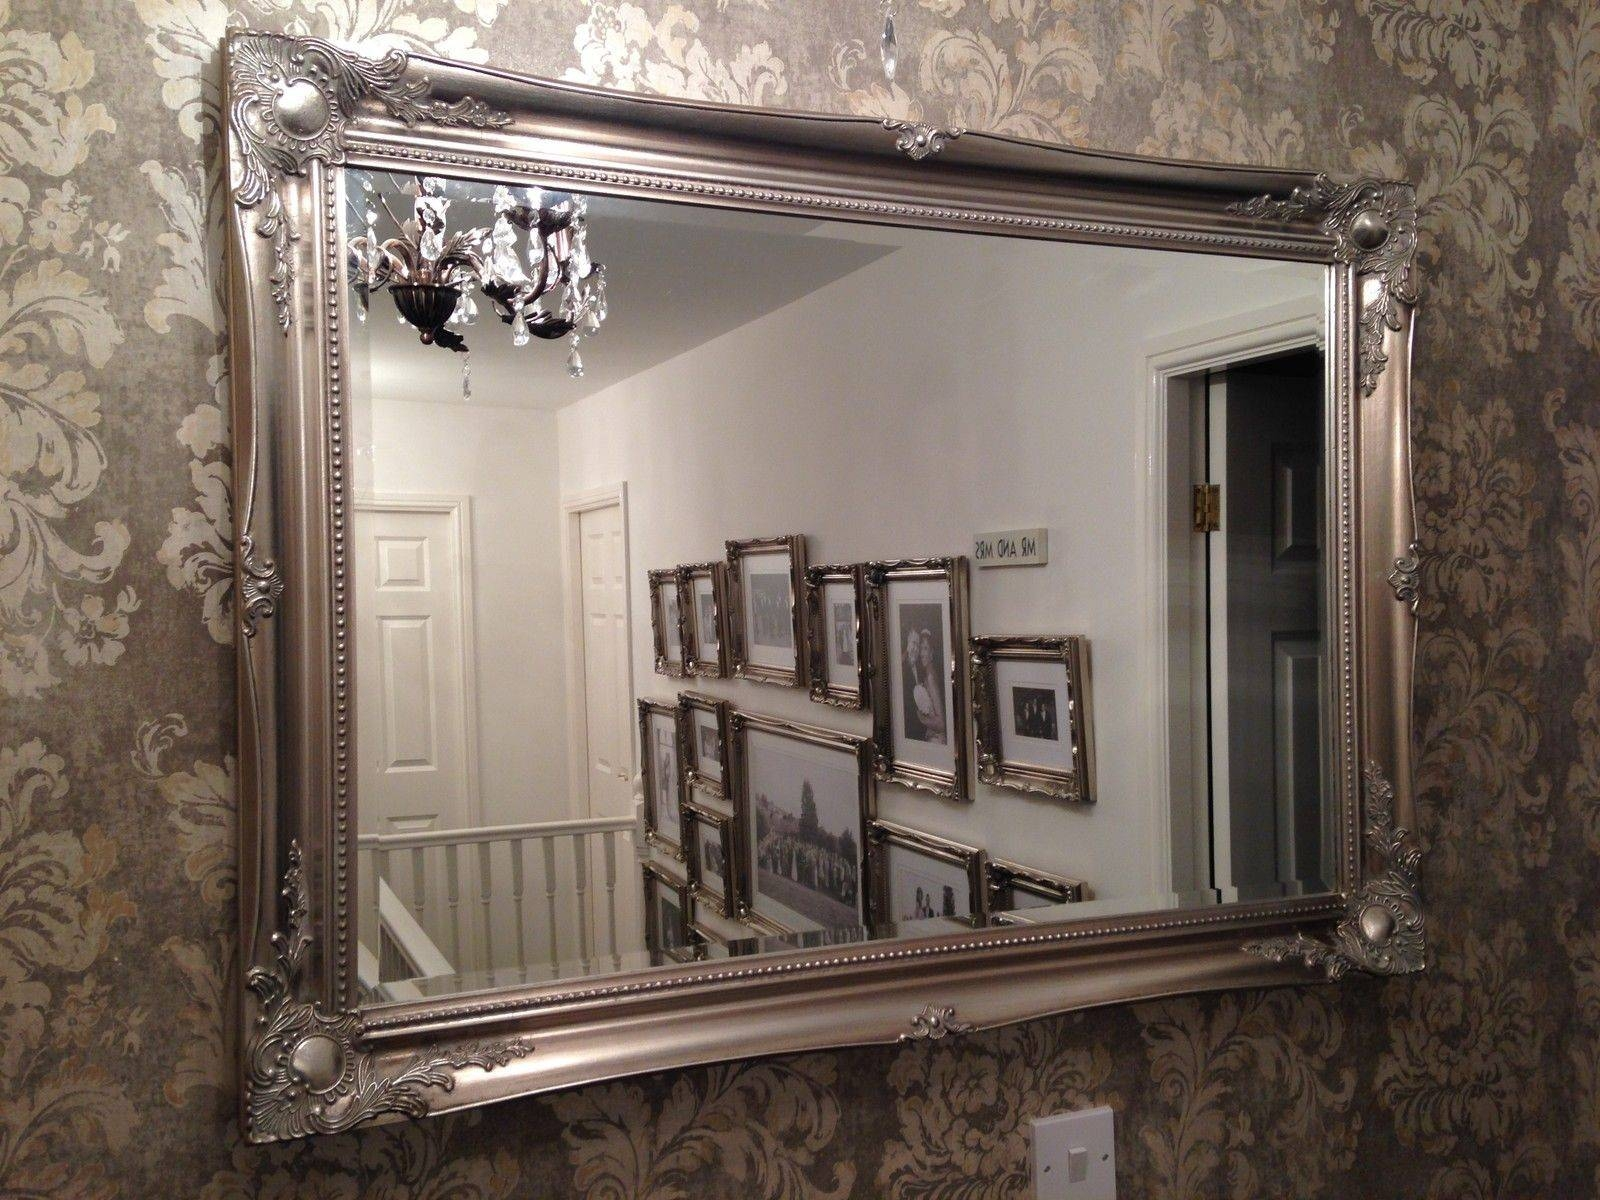 Old Fashioned Wall Mirrors Antique Mirror Wall Covering Vintage inside Antique Mirrors Vintage Mirrors (Image 21 of 25)